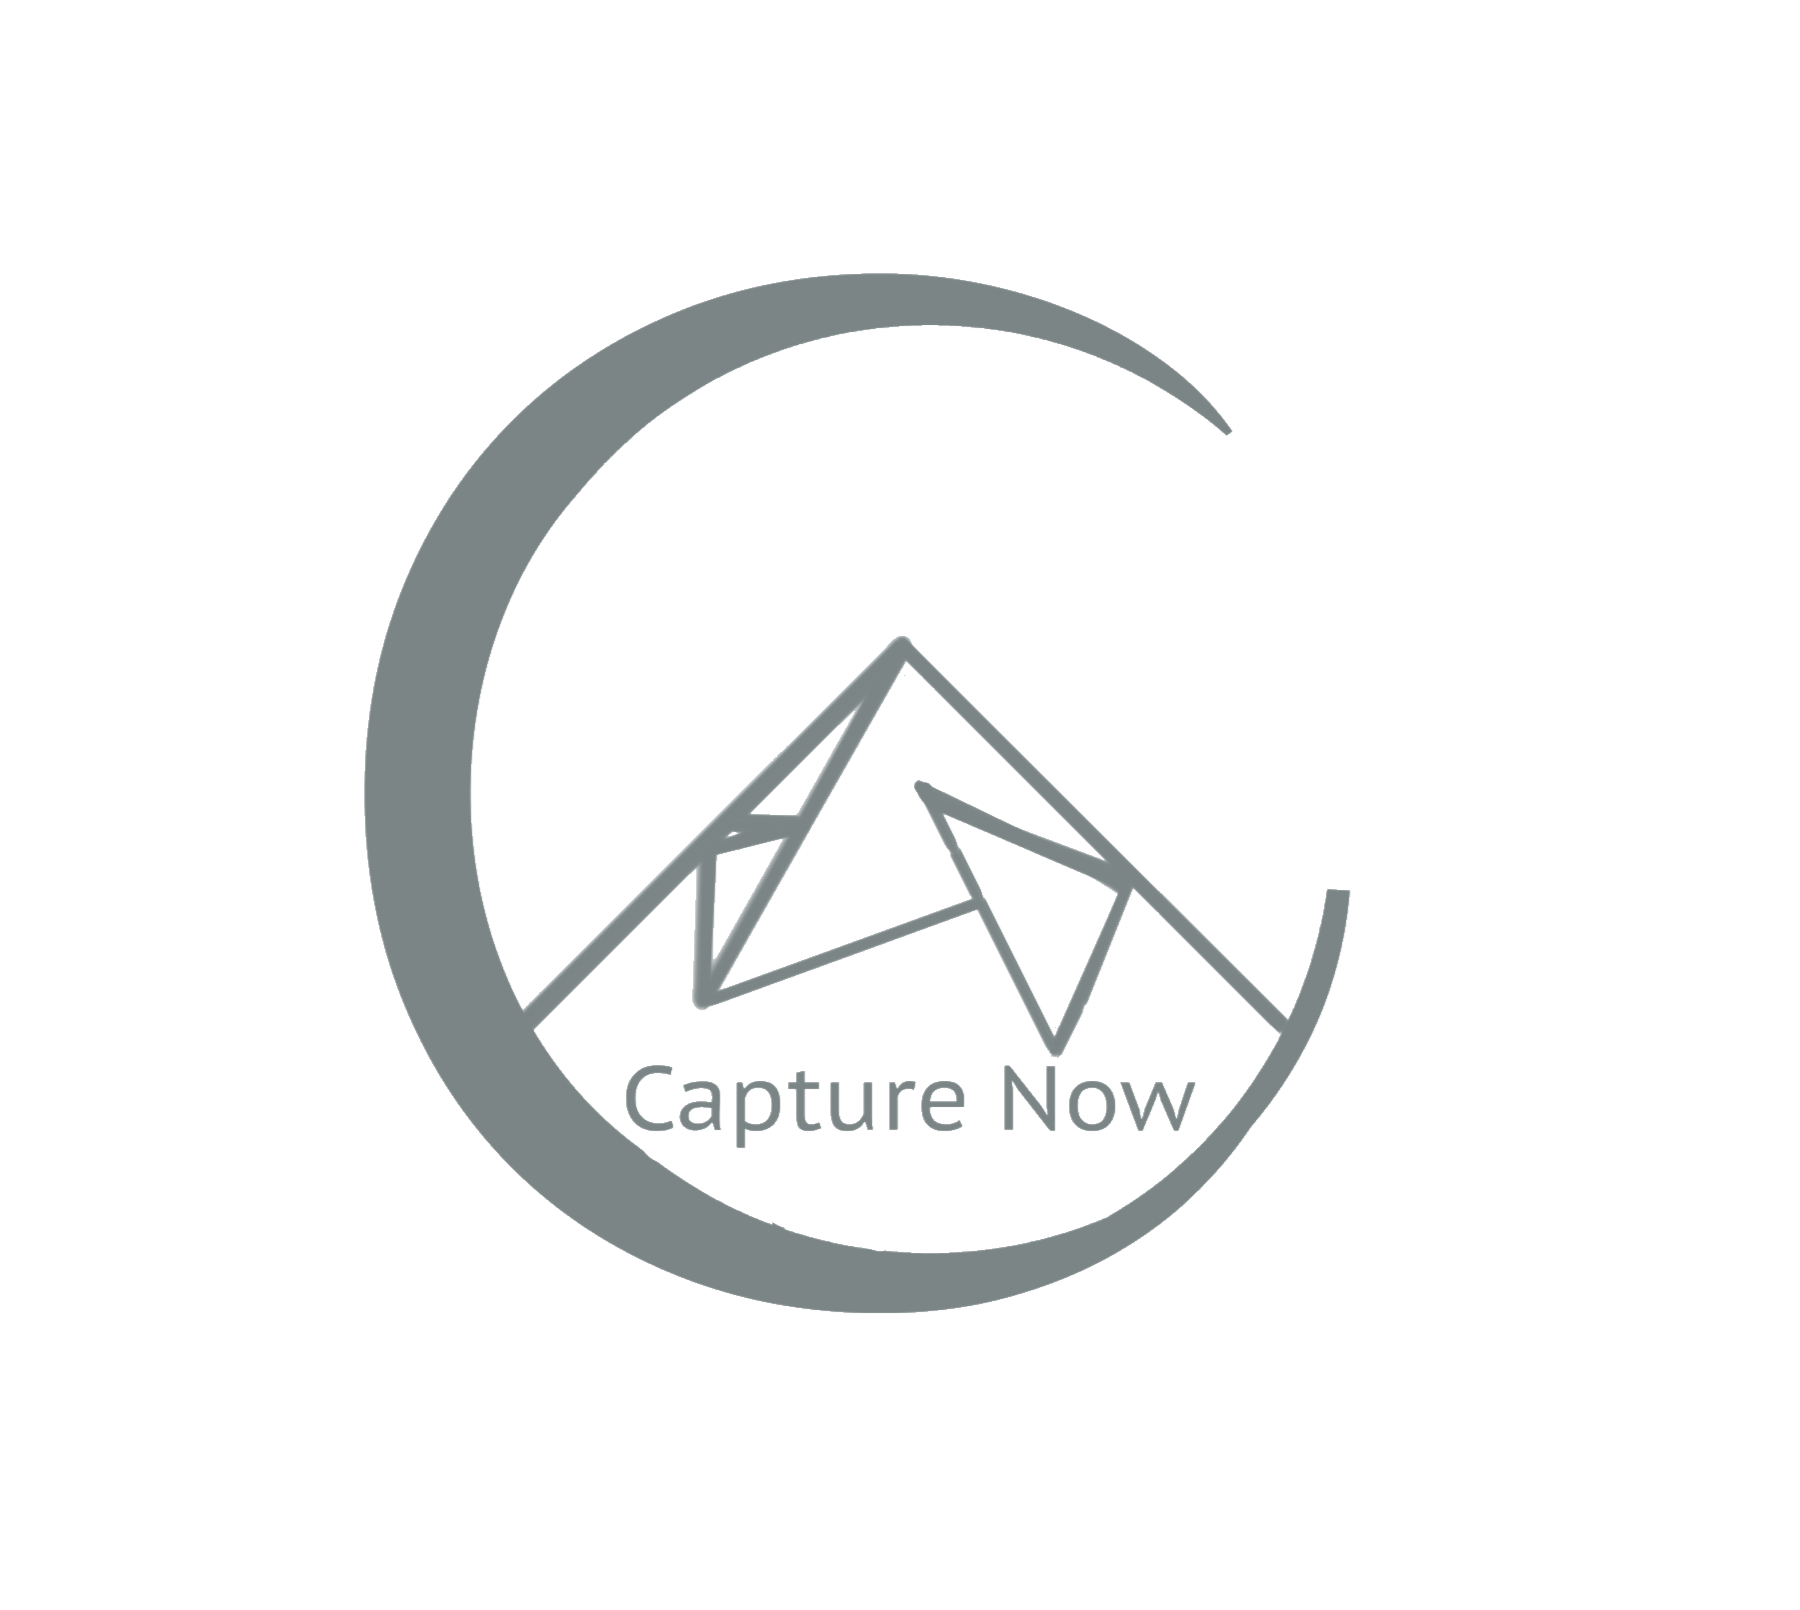 Capture Now Studios